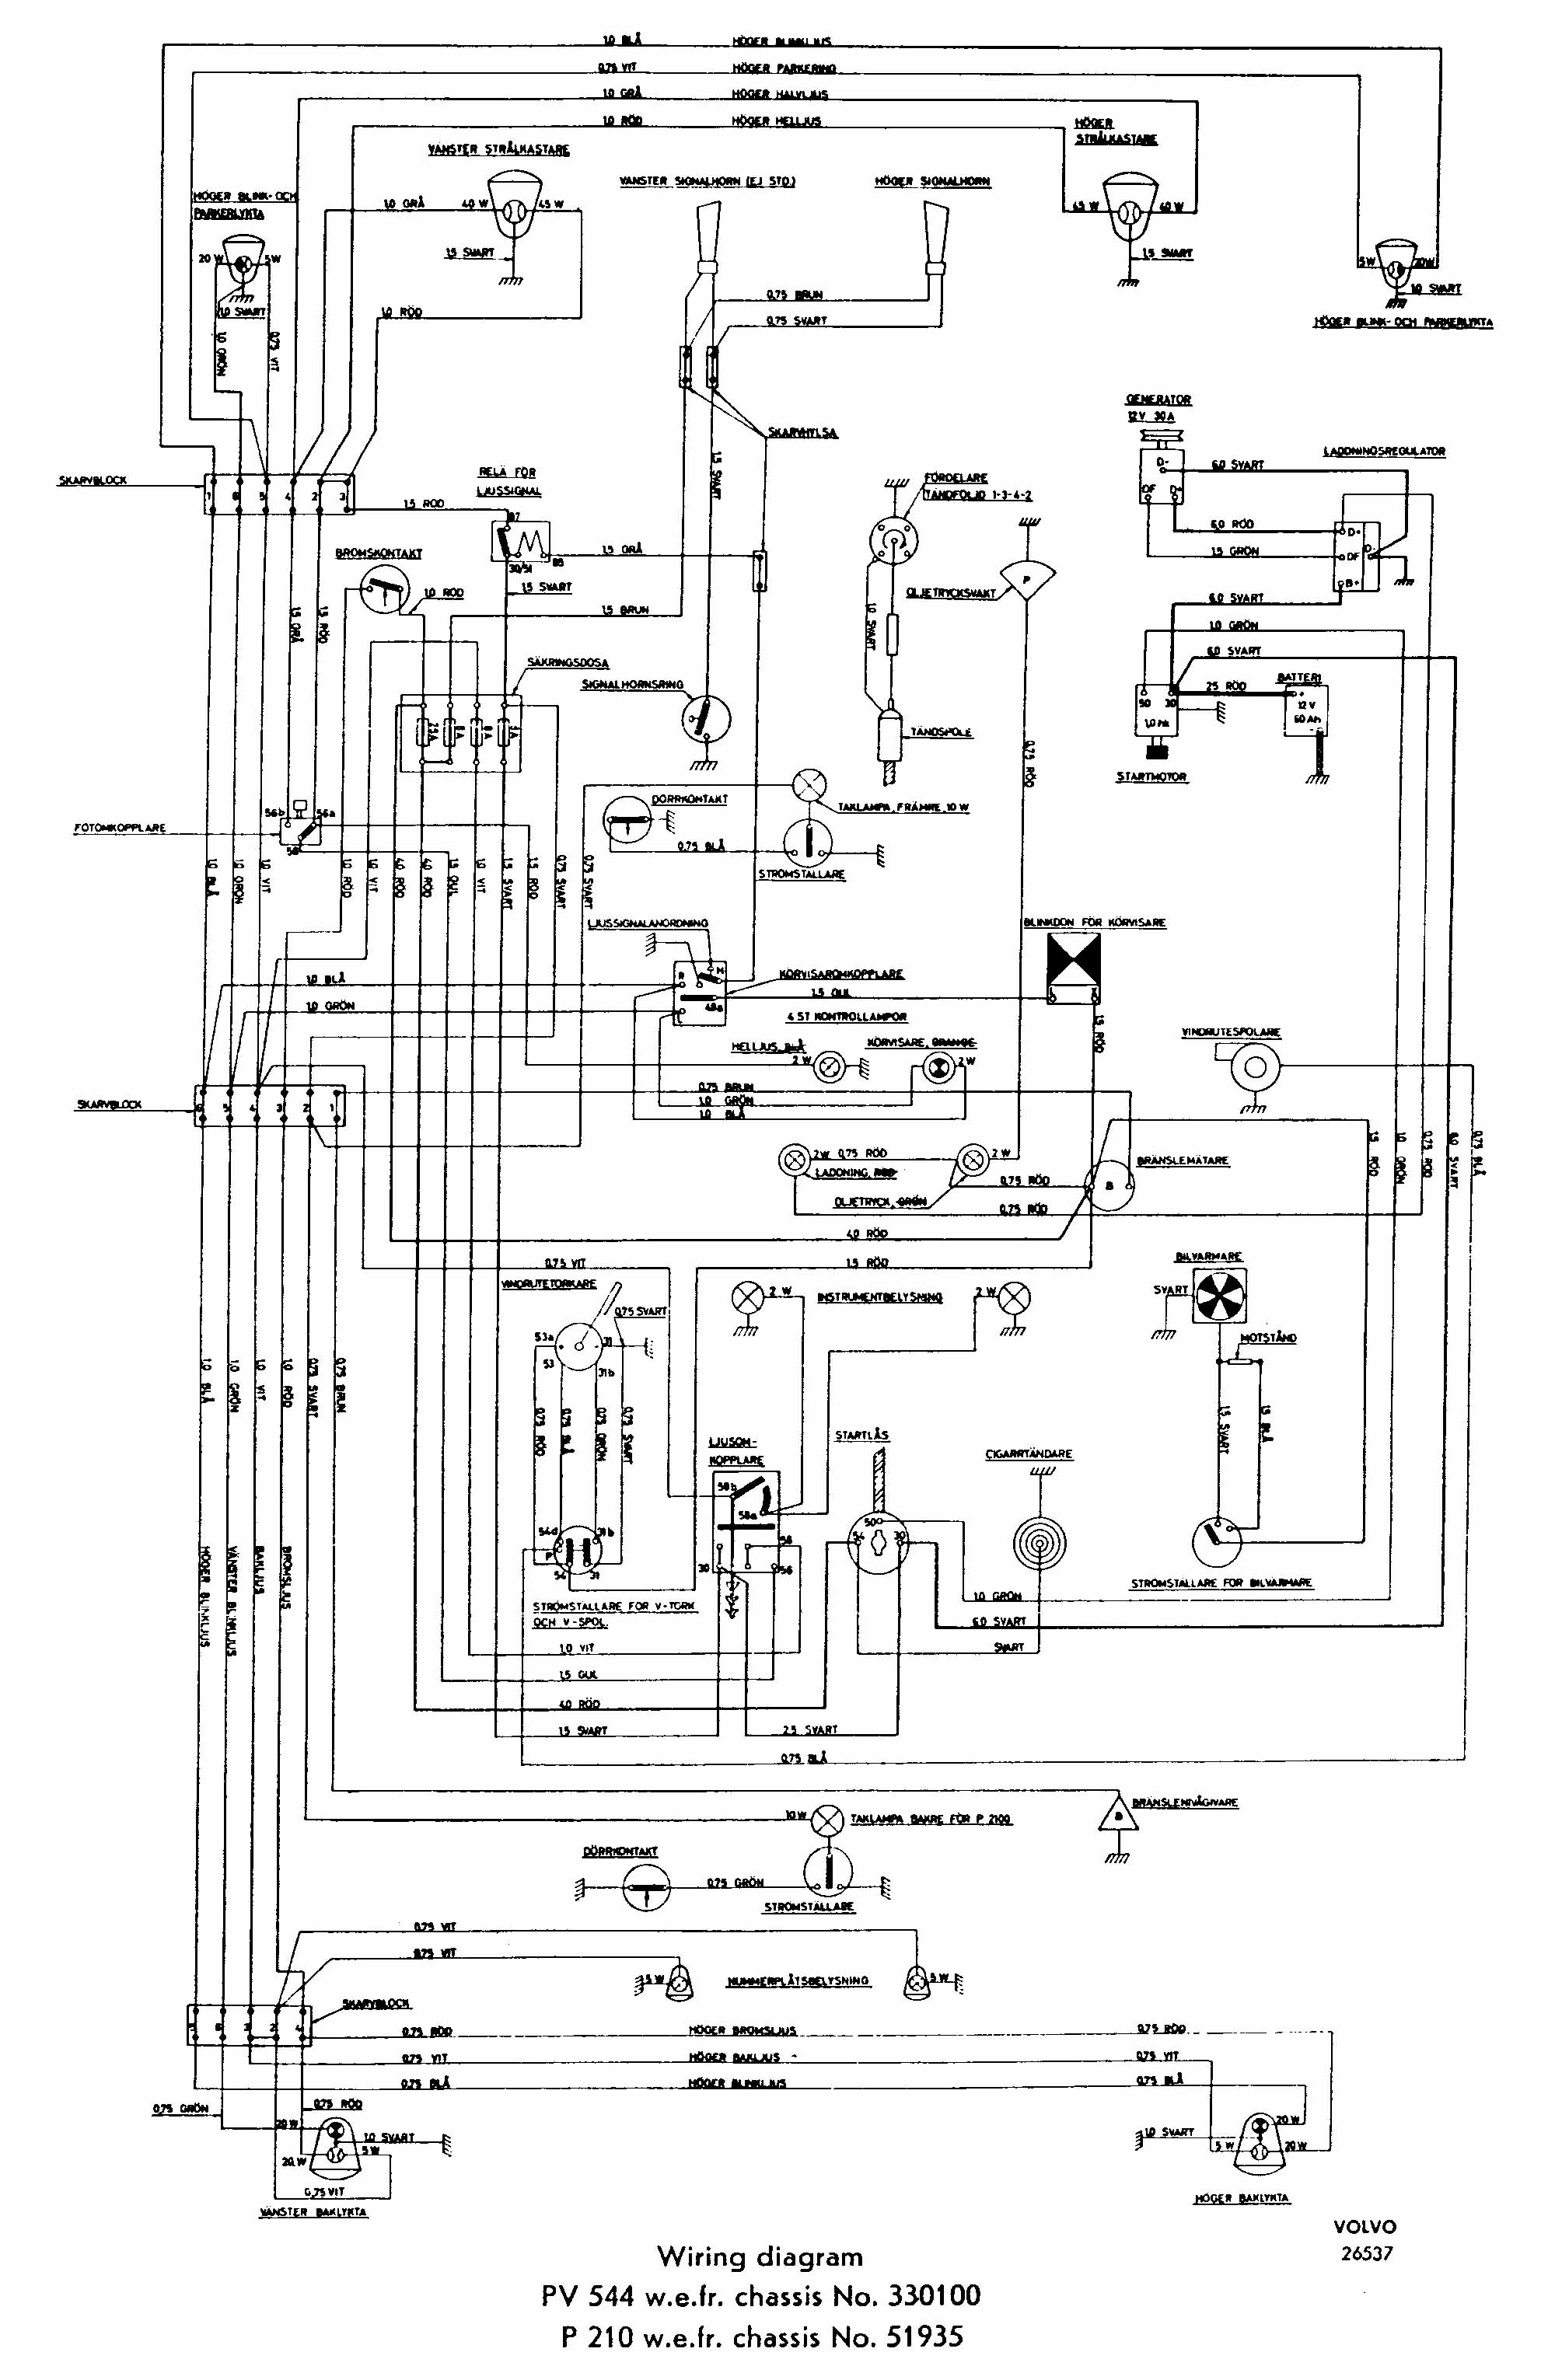 hight resolution of volvo pv544 wiring diagram wiring diagram notevolvo pv544 wiring diagram 3